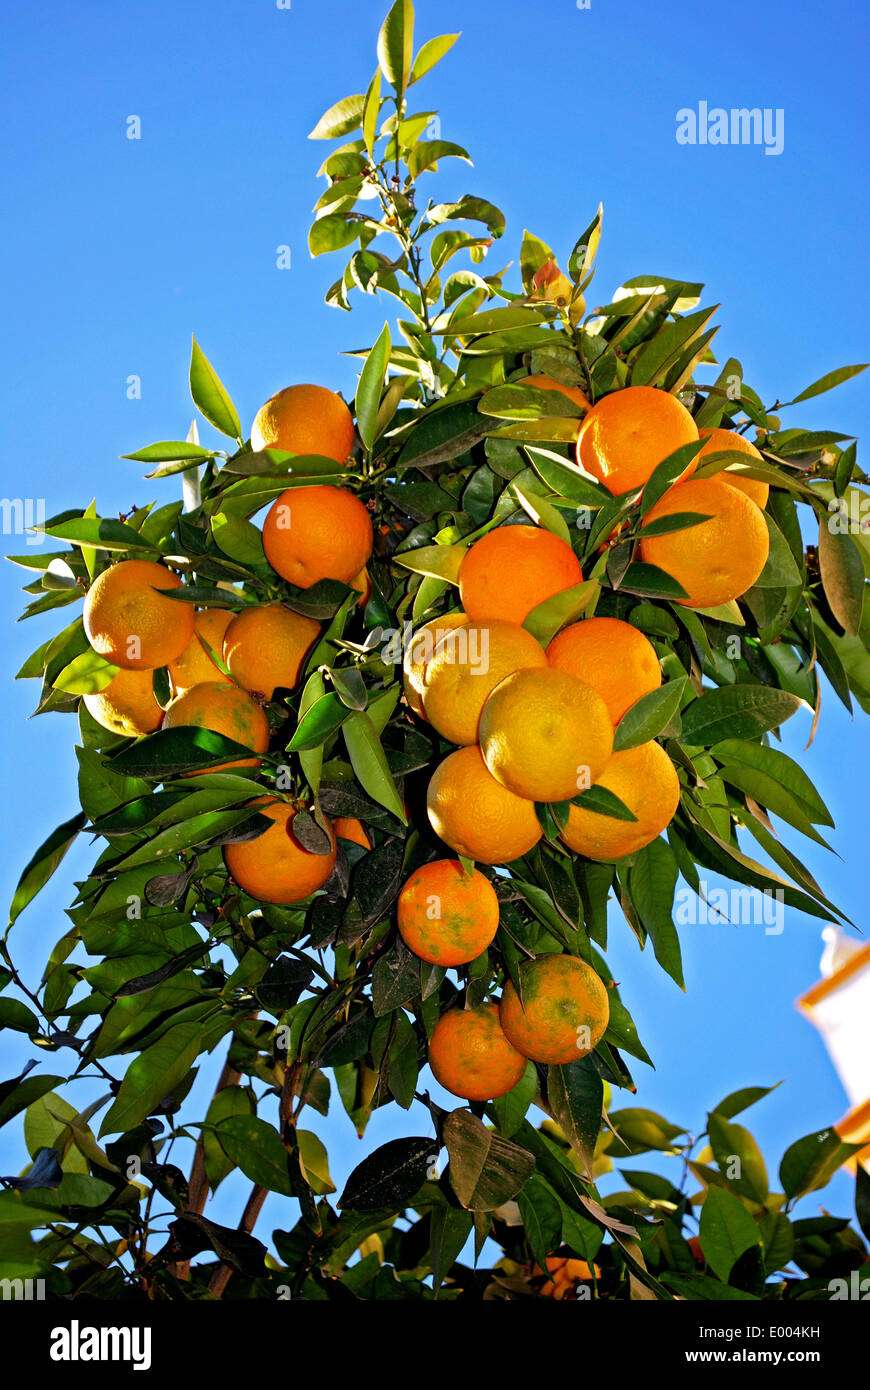 Ripe Seville oranges on a tree, Seville, Seville Province, Andalusia, Spain, Western Europe. Stock Photo